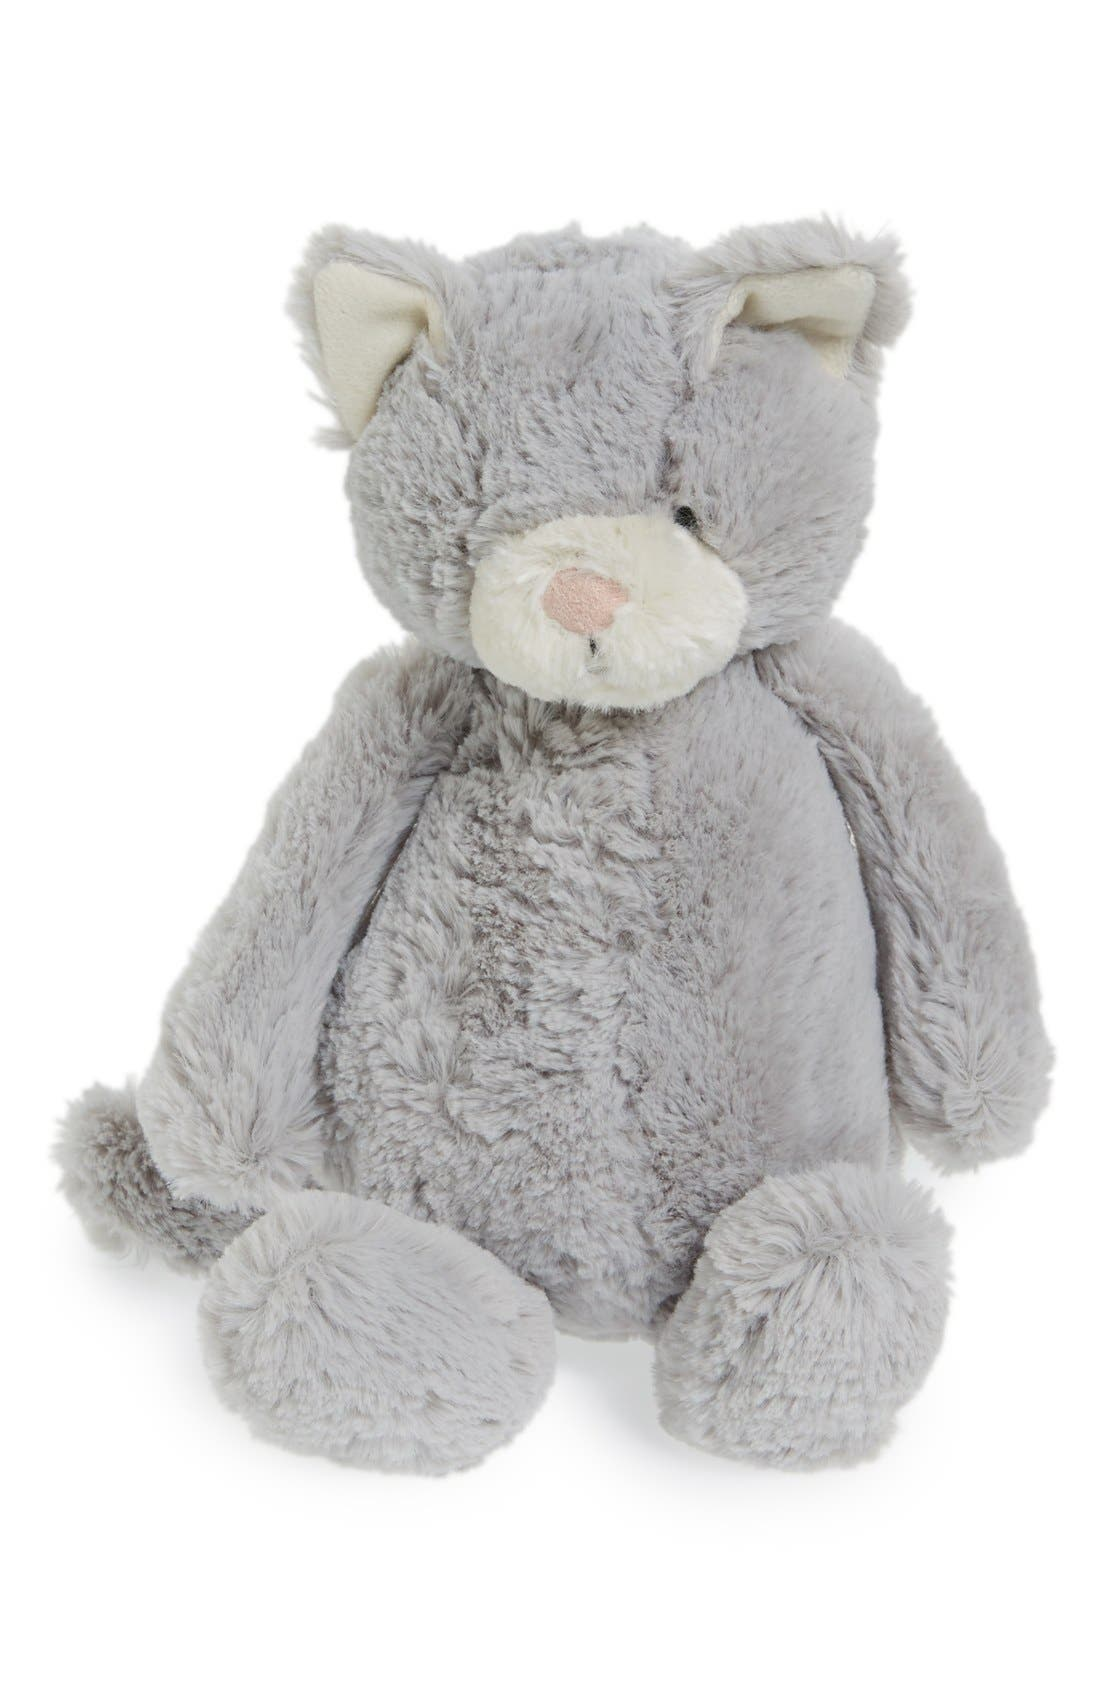 JELLYCAT 'Medium Bashful Kitty' Stuffed Animal